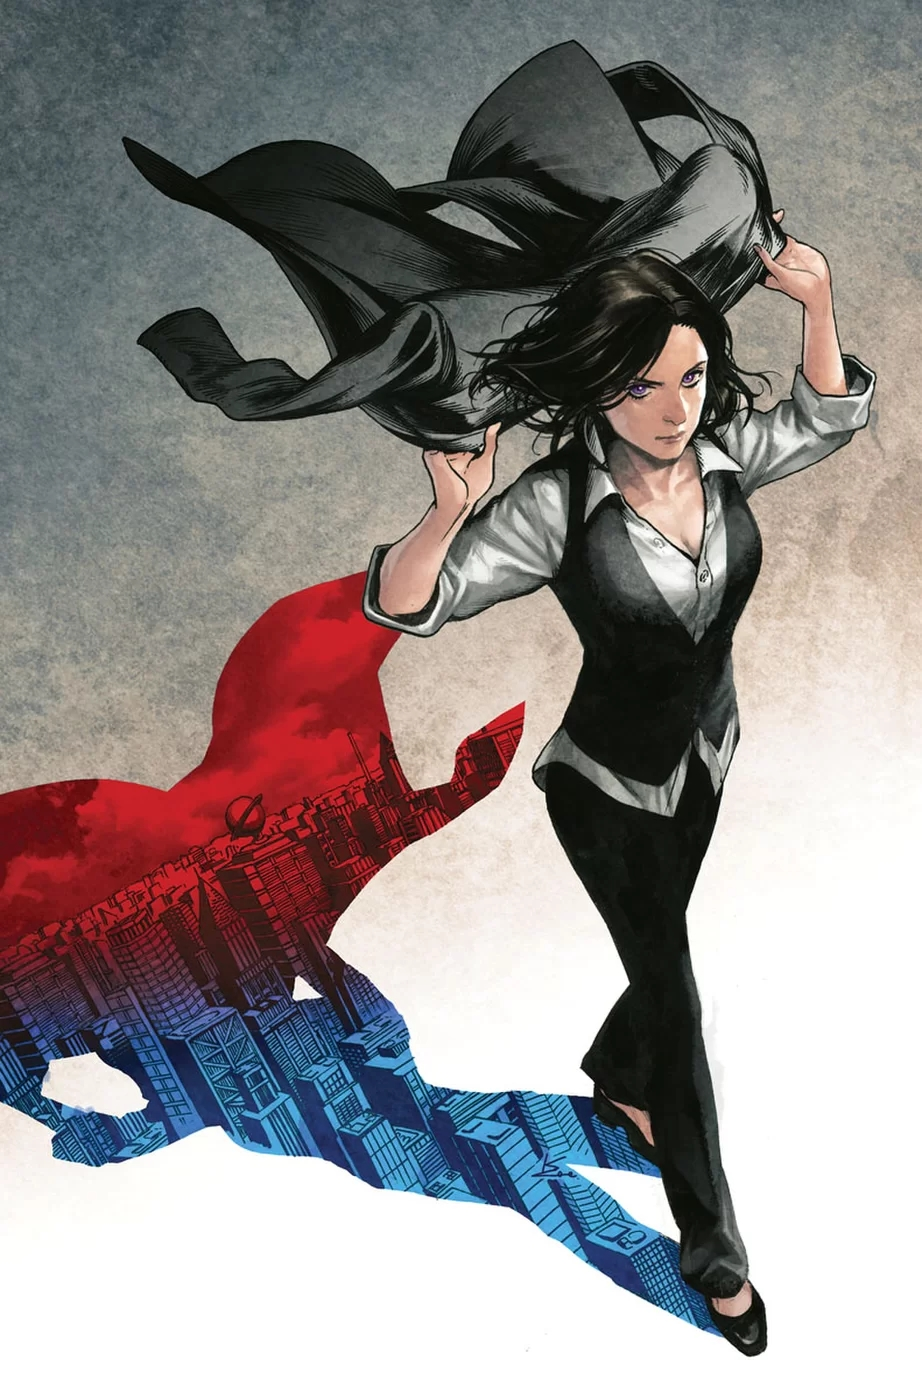 Does Lois Lane #8 Solicitation Support the 'Cuck Kent' Theory?